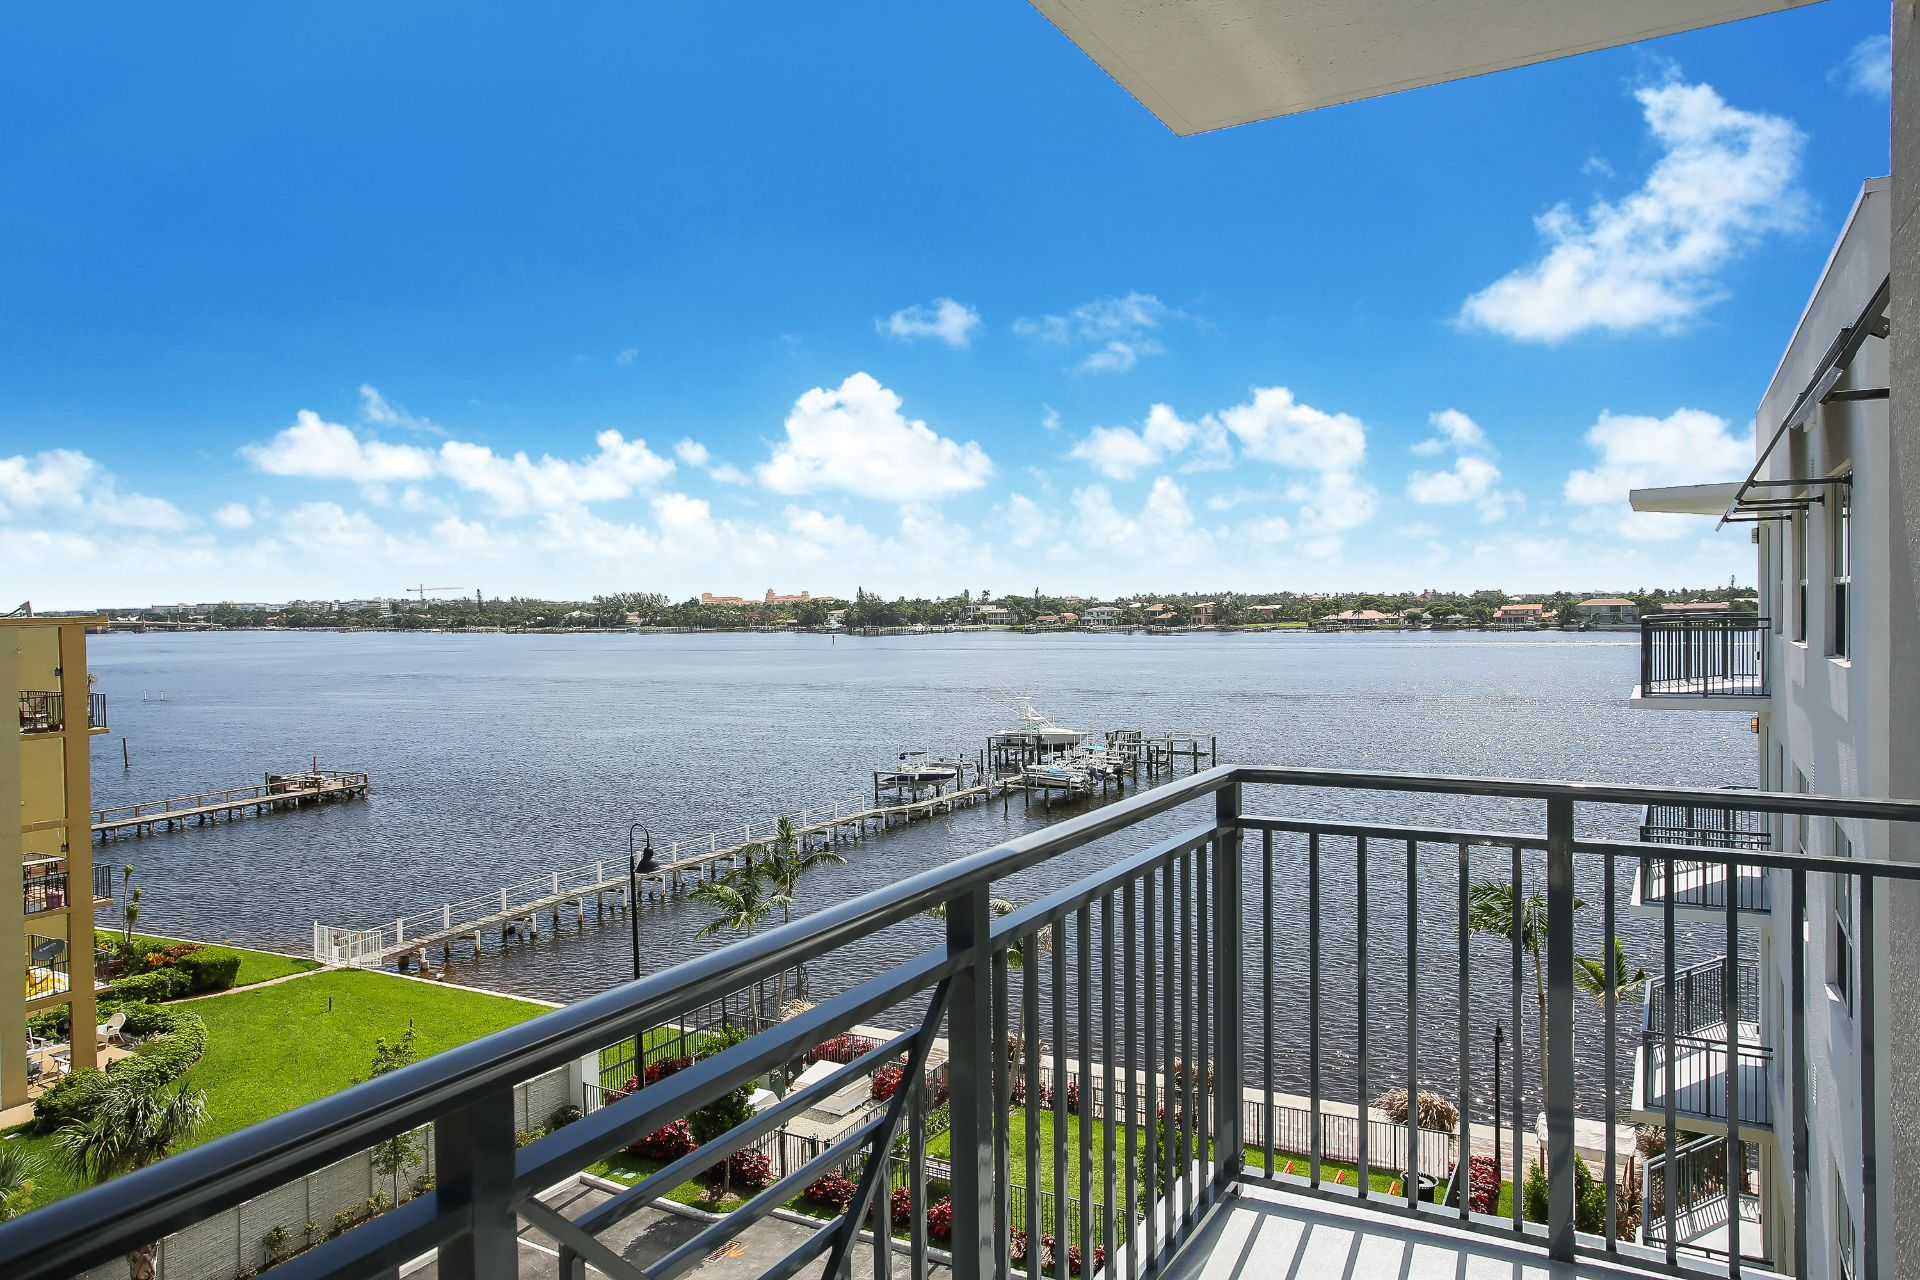 View of waterway from balcony